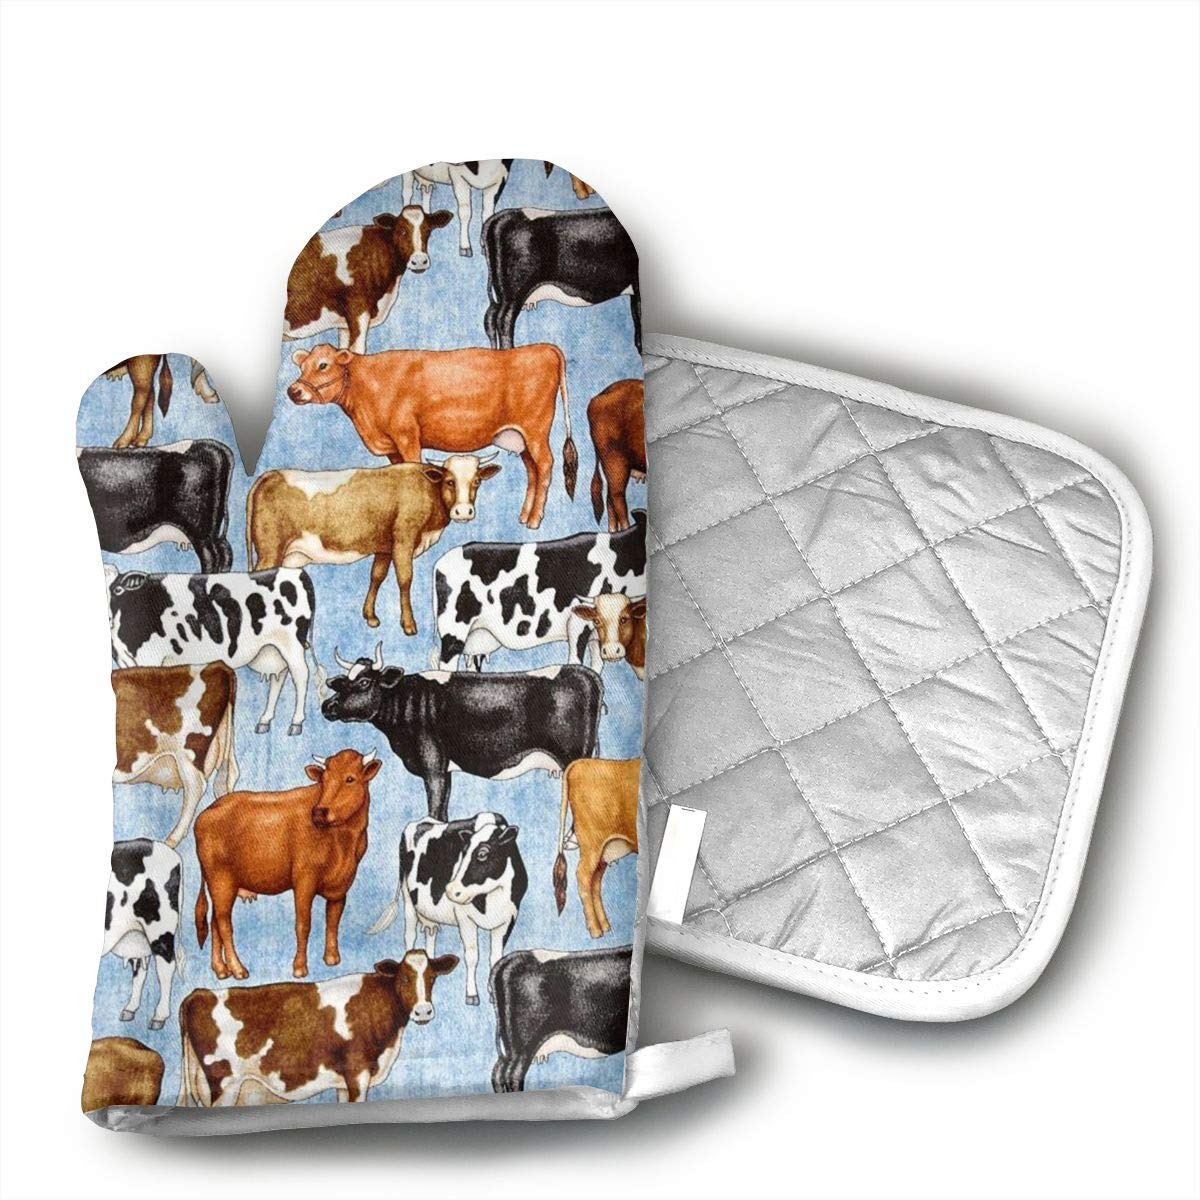 Sjiwqoj8 Bountiful Farm Animals Kitchen Oven Mitts,Oven Mitts and Pot Holders,Heat Resistant with Quilted Cotton Lining,Cooking,Baking,Grilling,Barbecue